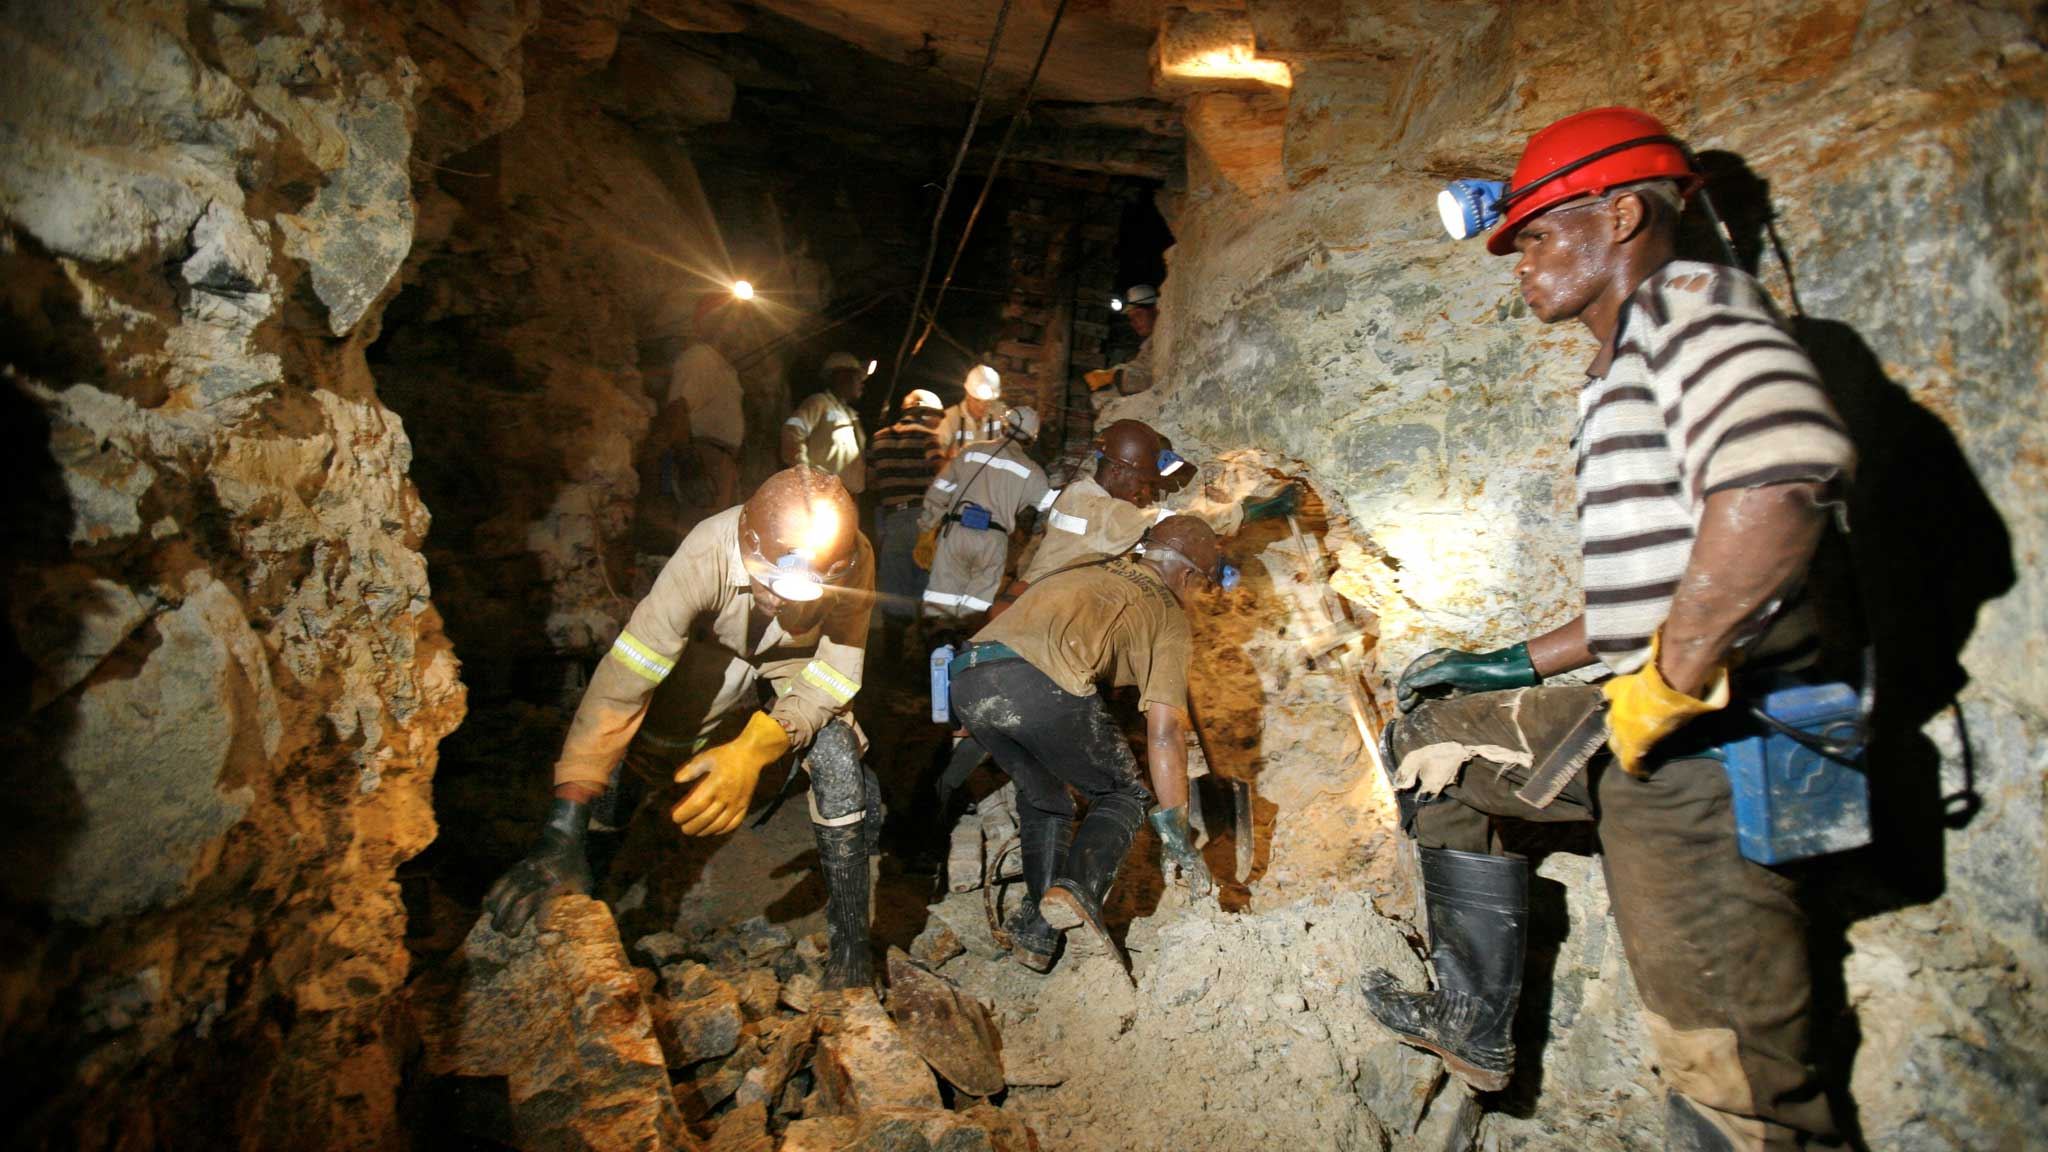 Hundreds Of Miners Trapped Underground In South Africa